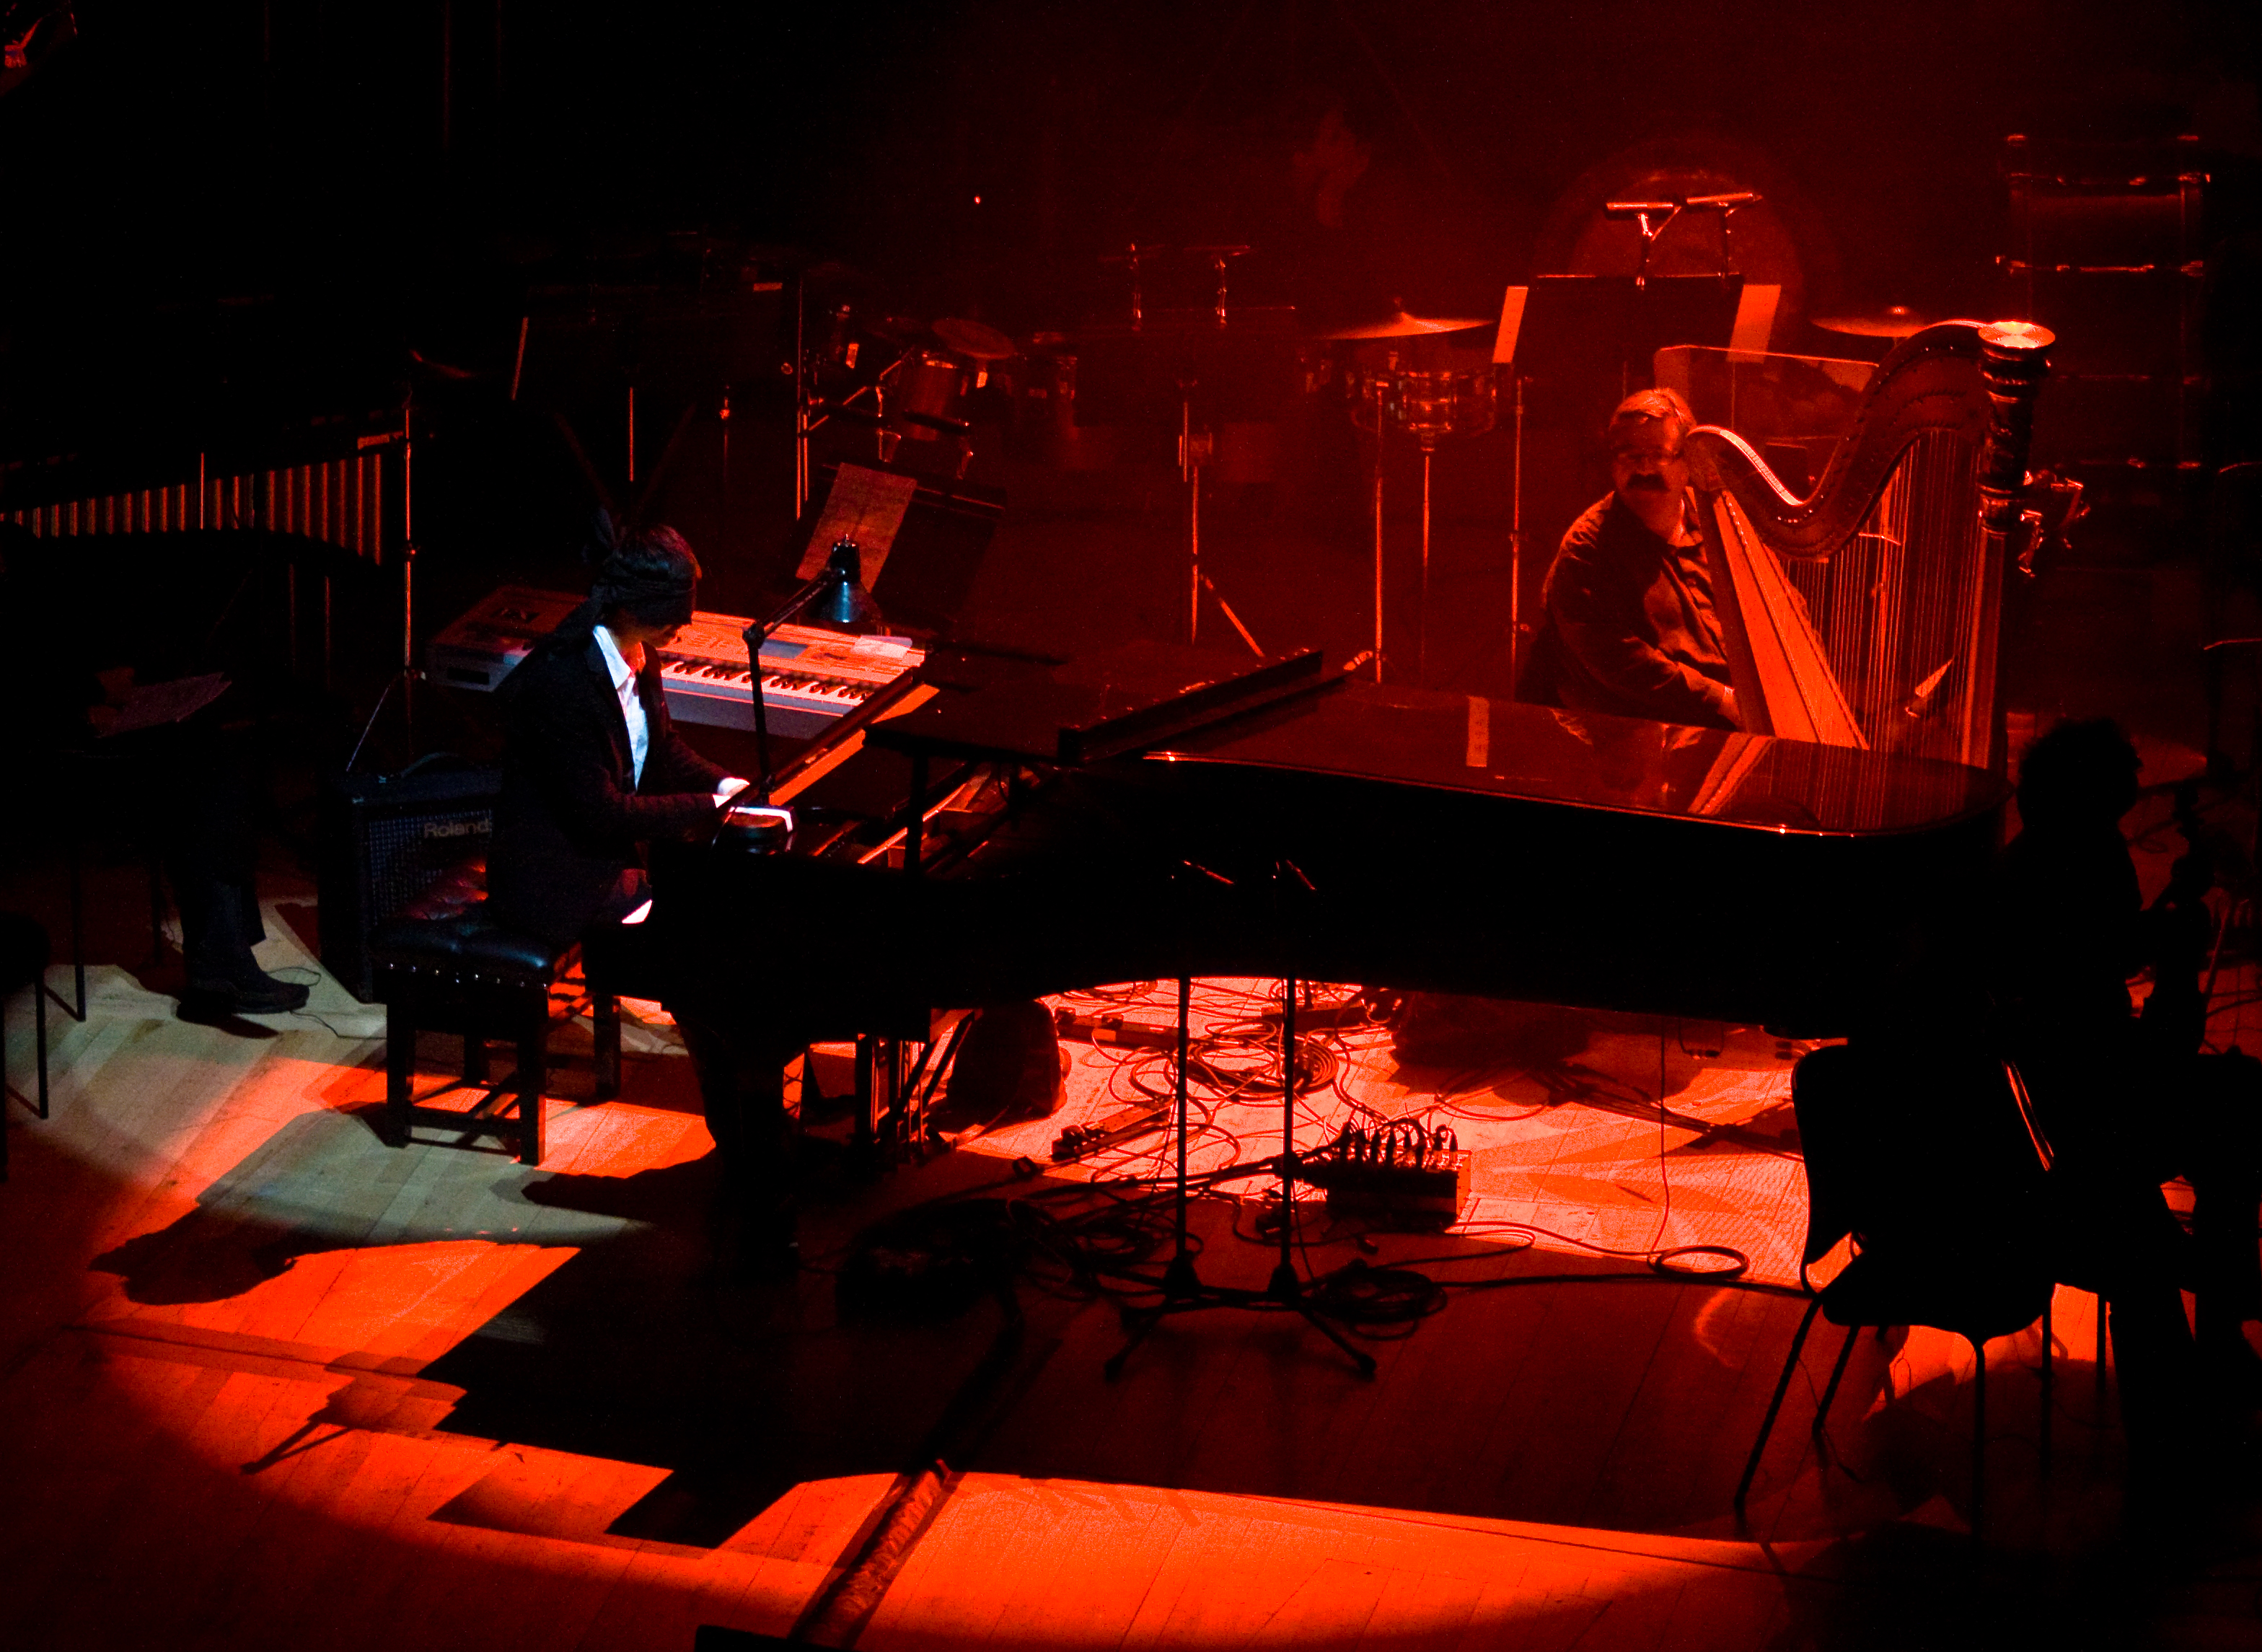 Martin Leung Performing at Video Games Live.jpg English: The Video Game Pianist performing in October 2008 on stage at the Royal Festival Hall